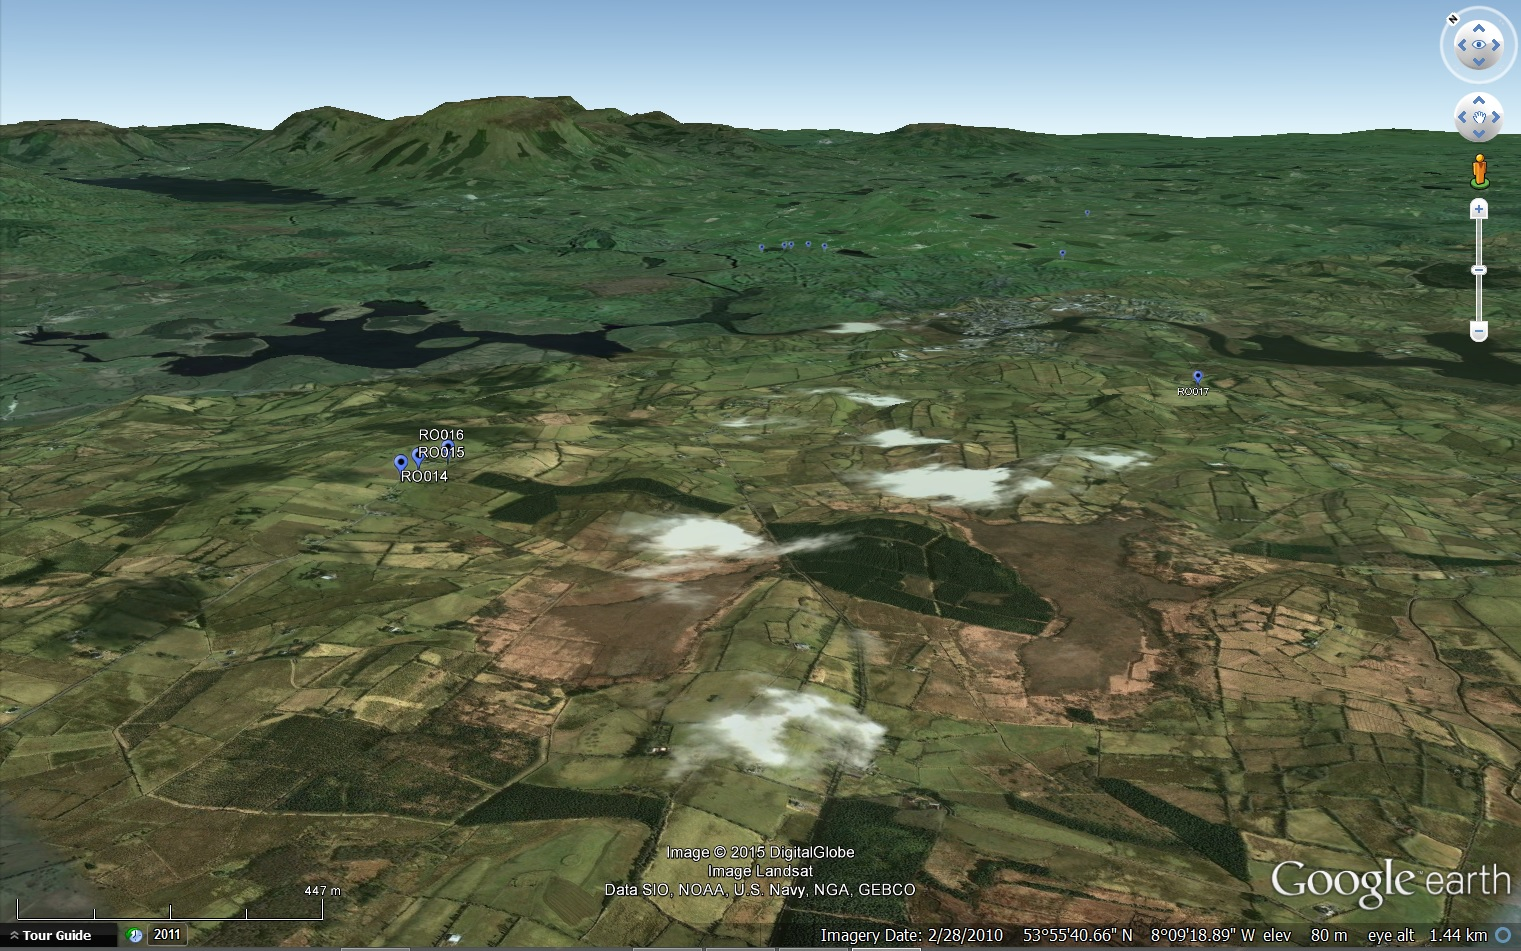 Google Earth view of the drumlin belt overlying the Croghan Limestone Formation, with suveypoints marked